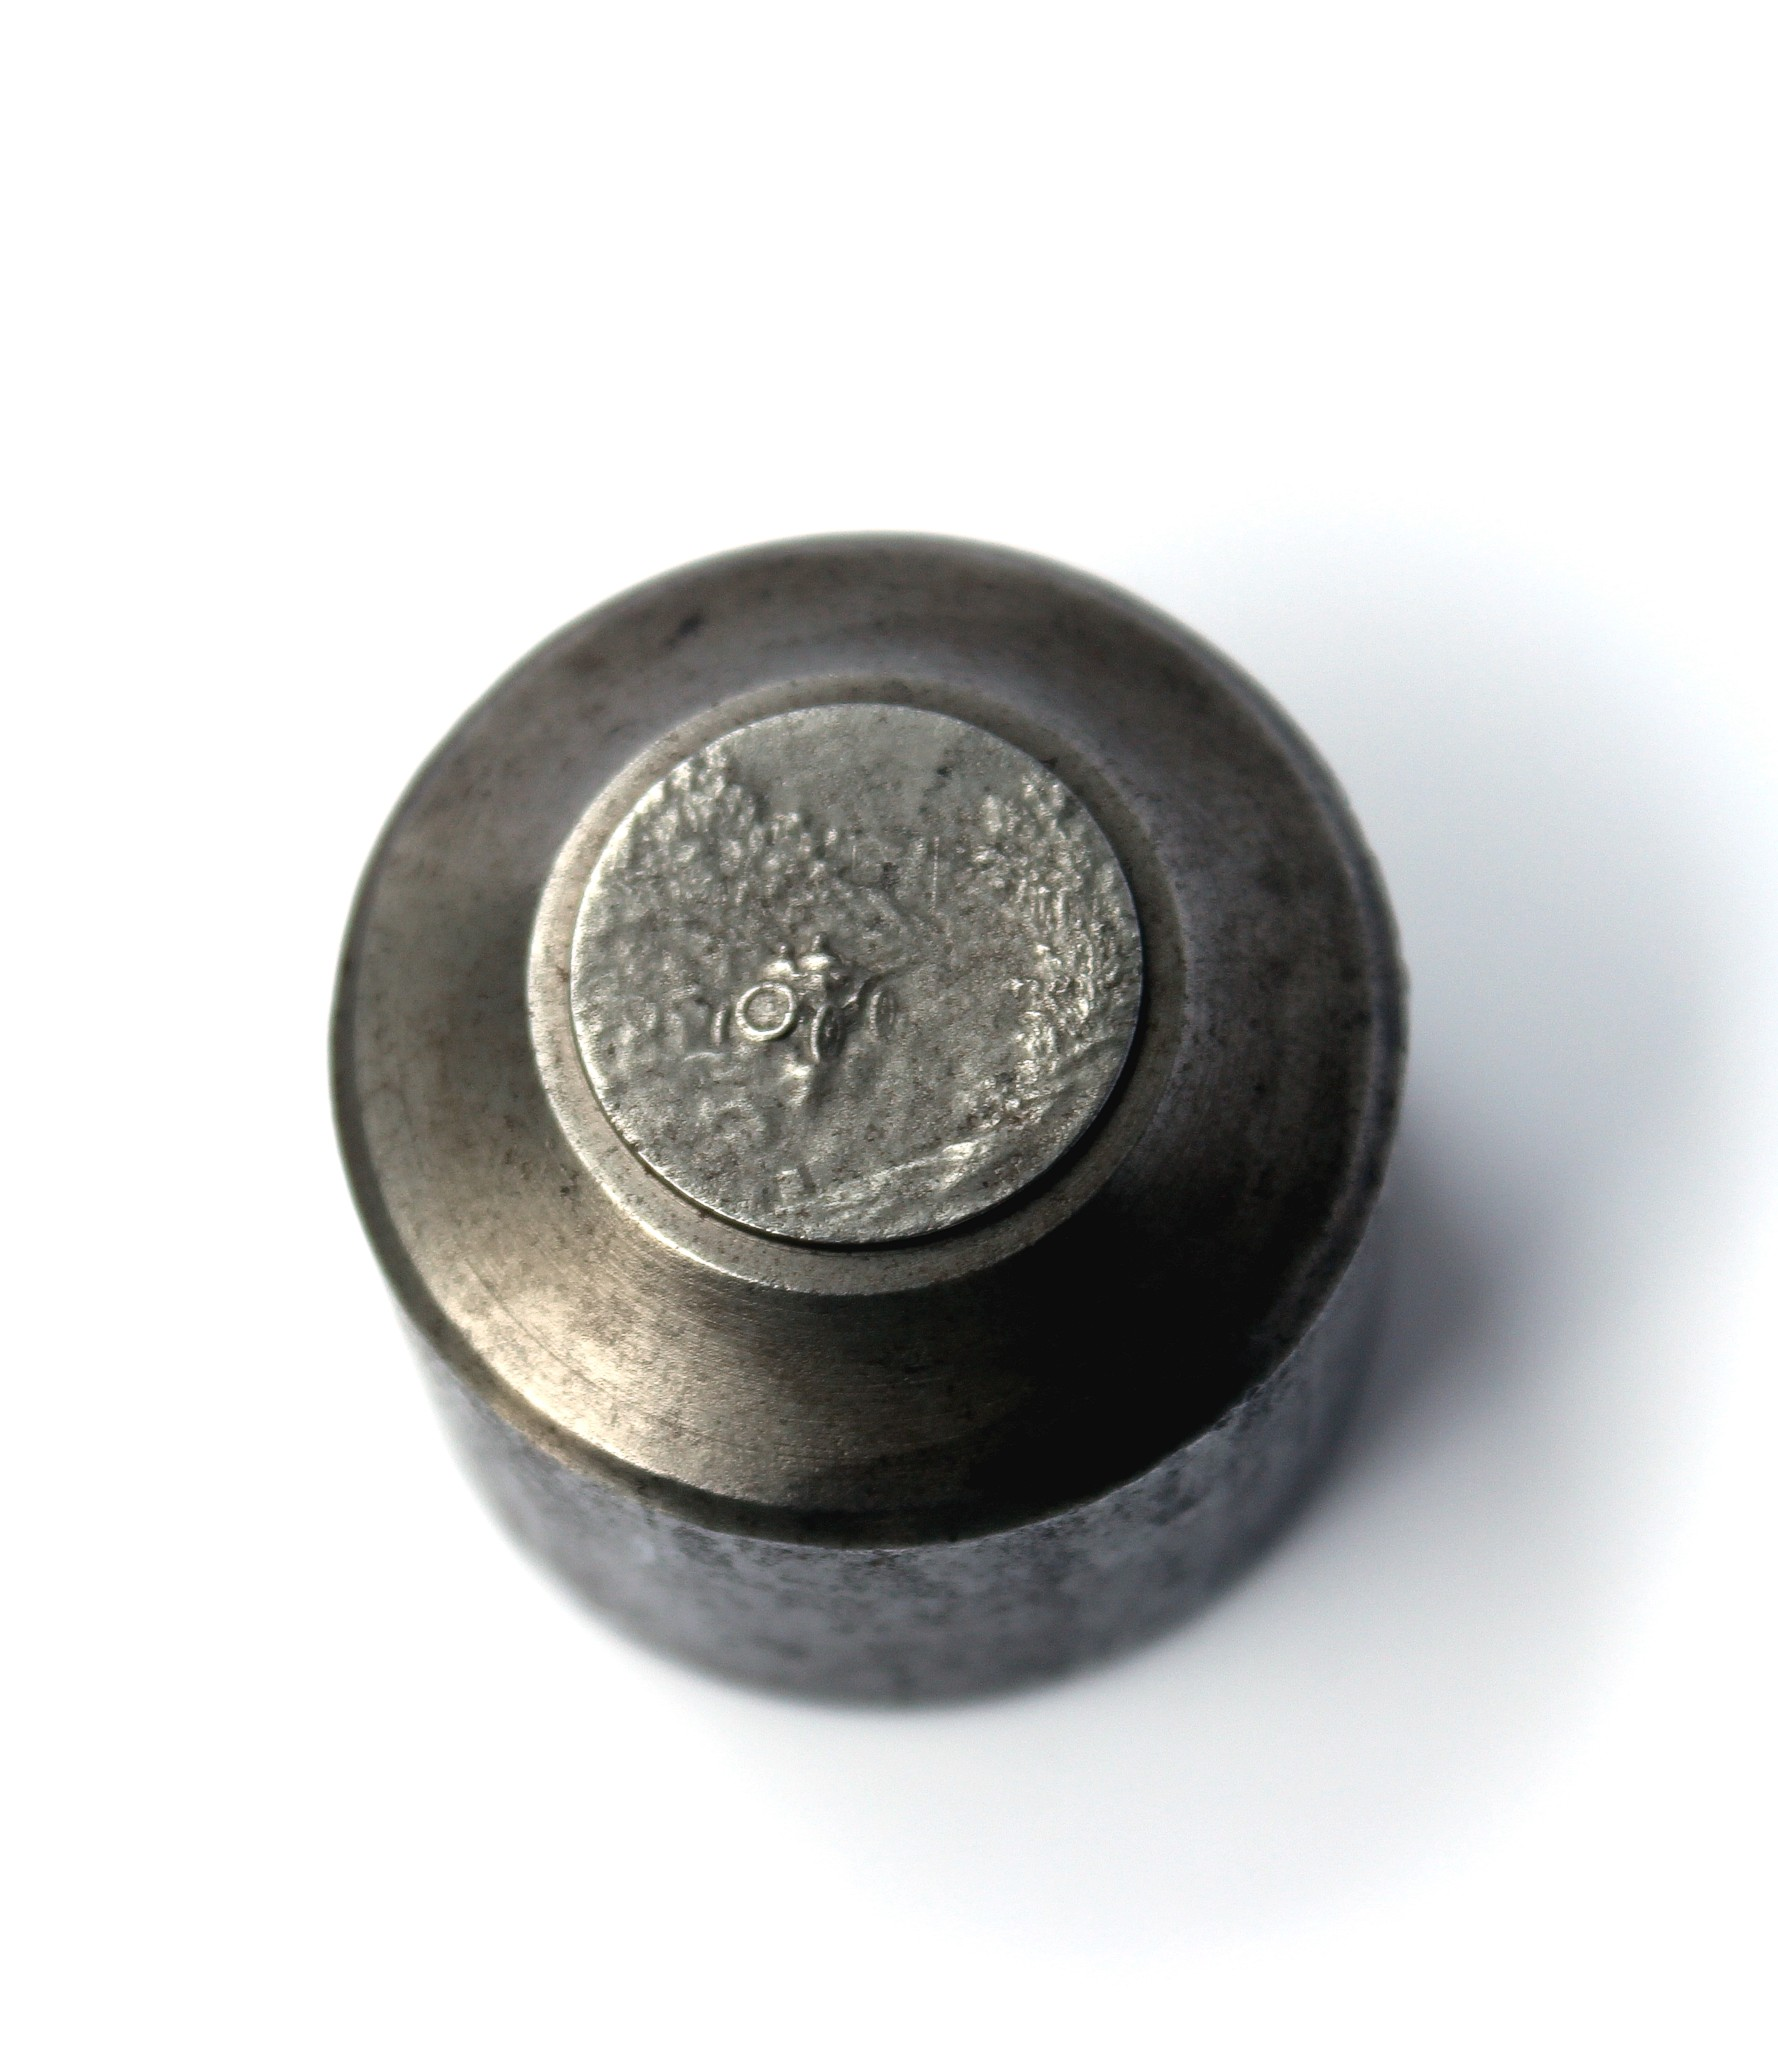 Early 20th century steel medal die from a motoring by Felix Rasumny for sale